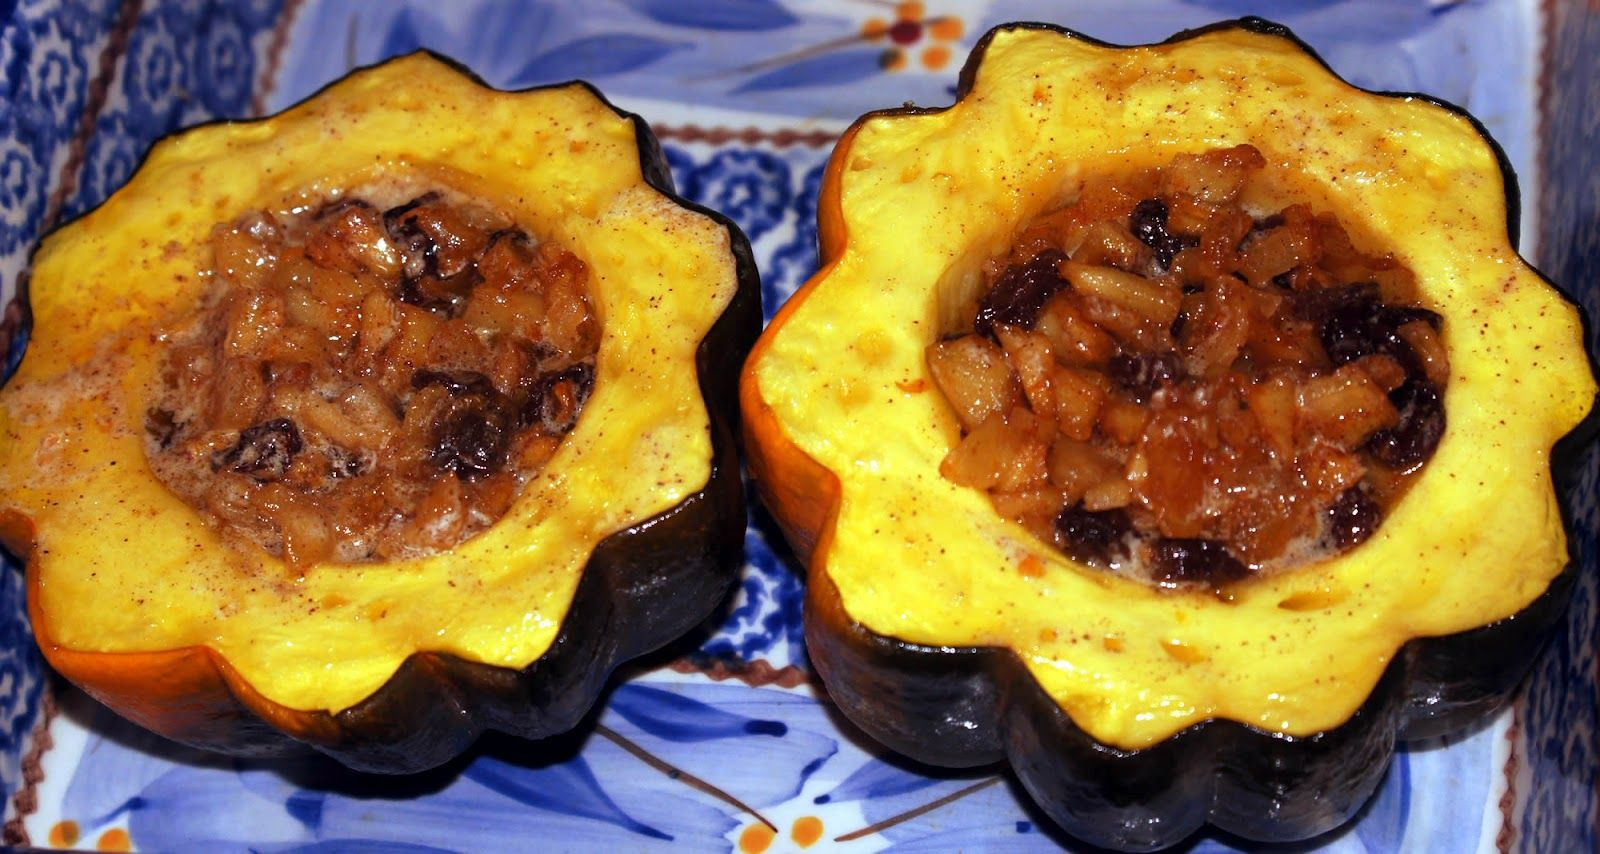 Little Bit Of Everything Baked Acorn Squash With Apple Filling